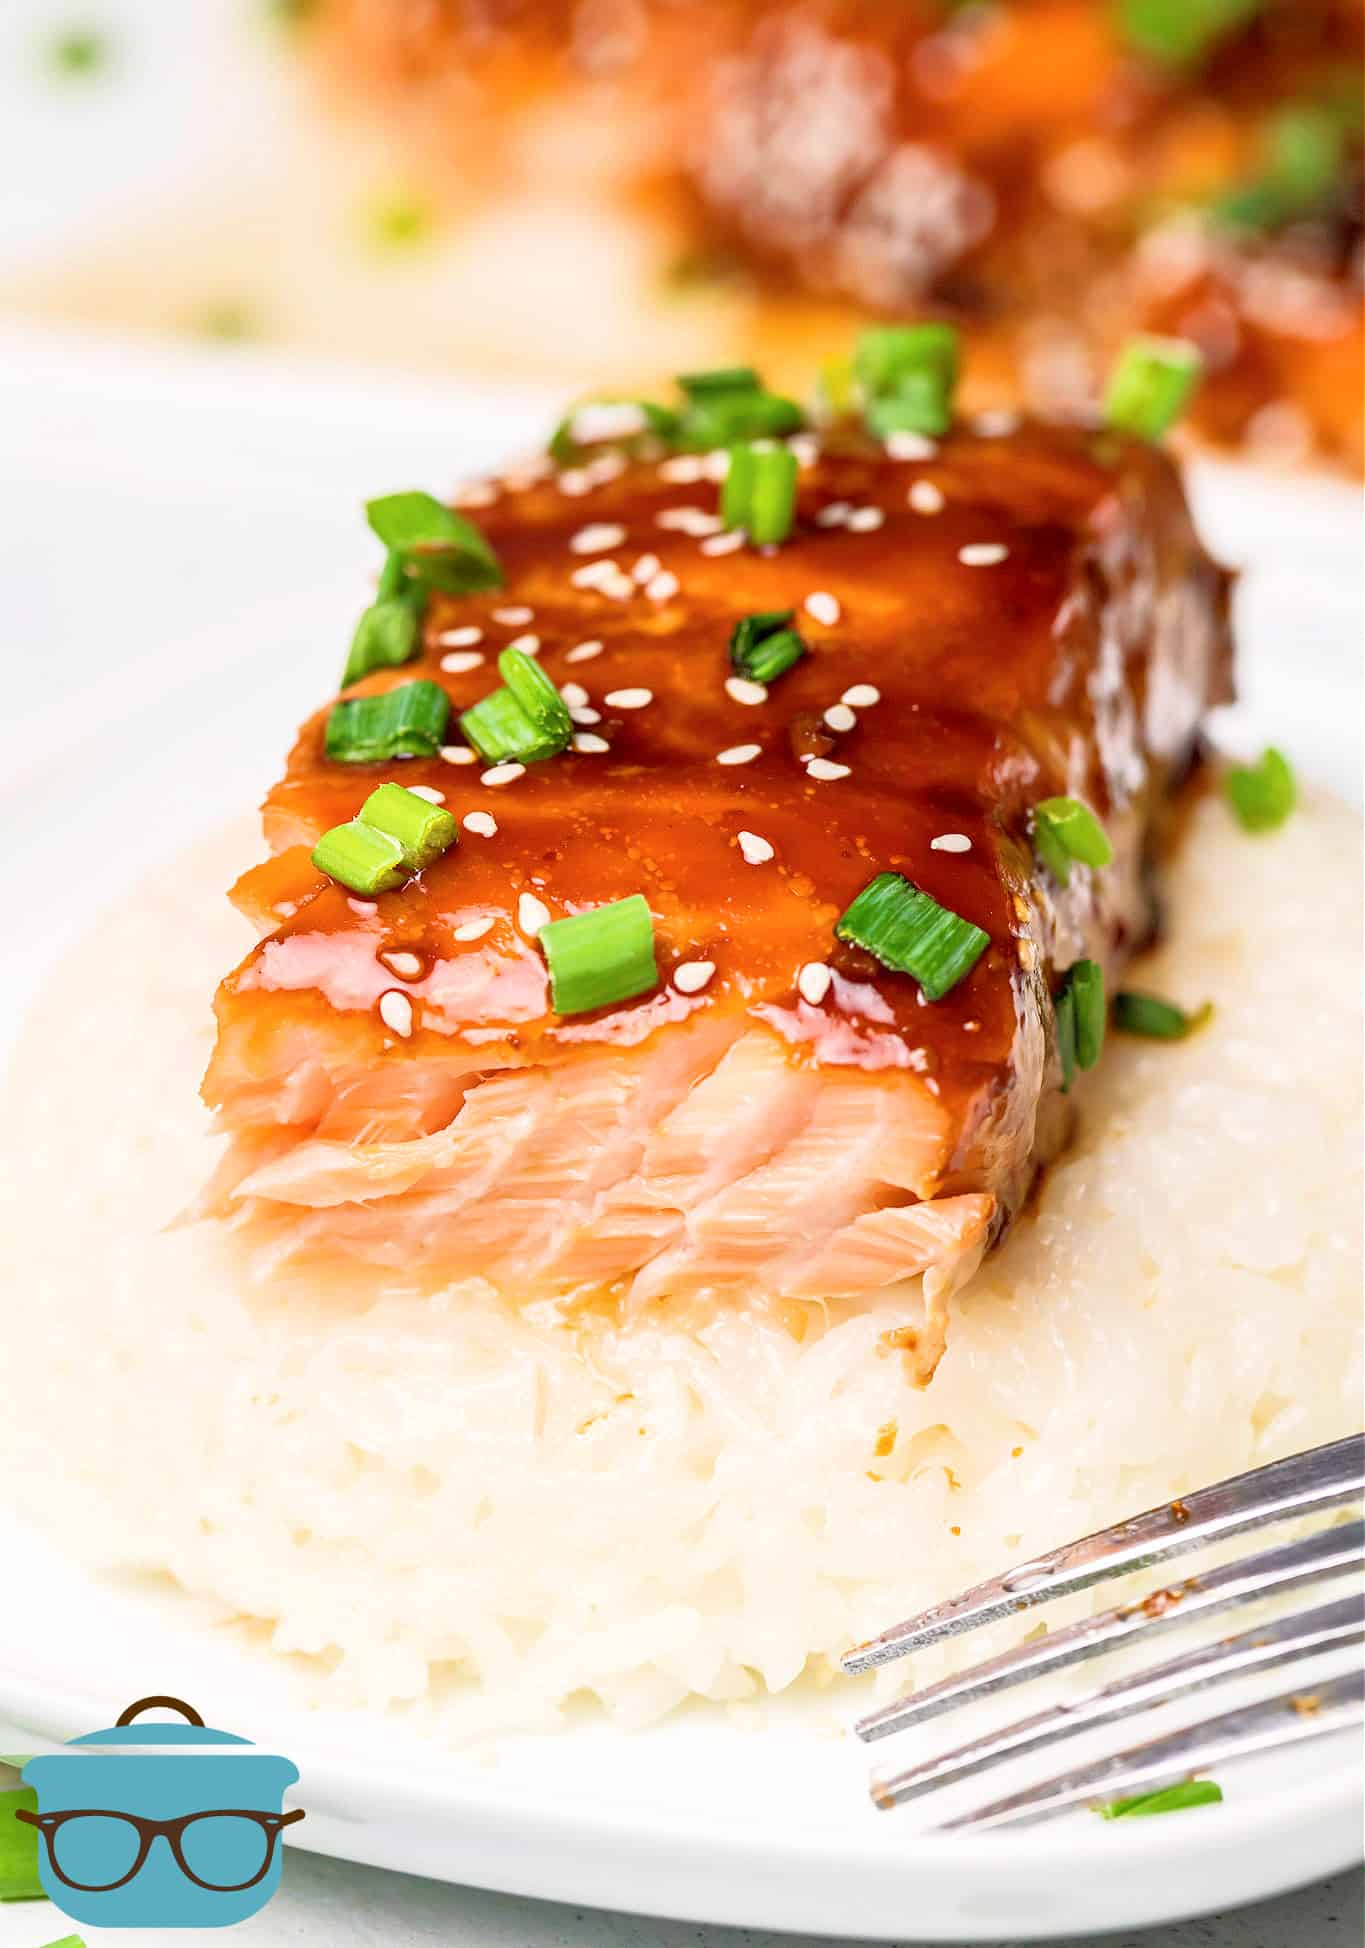 Slice of salmon over bed or rice topped with sesame seeds and green onions.